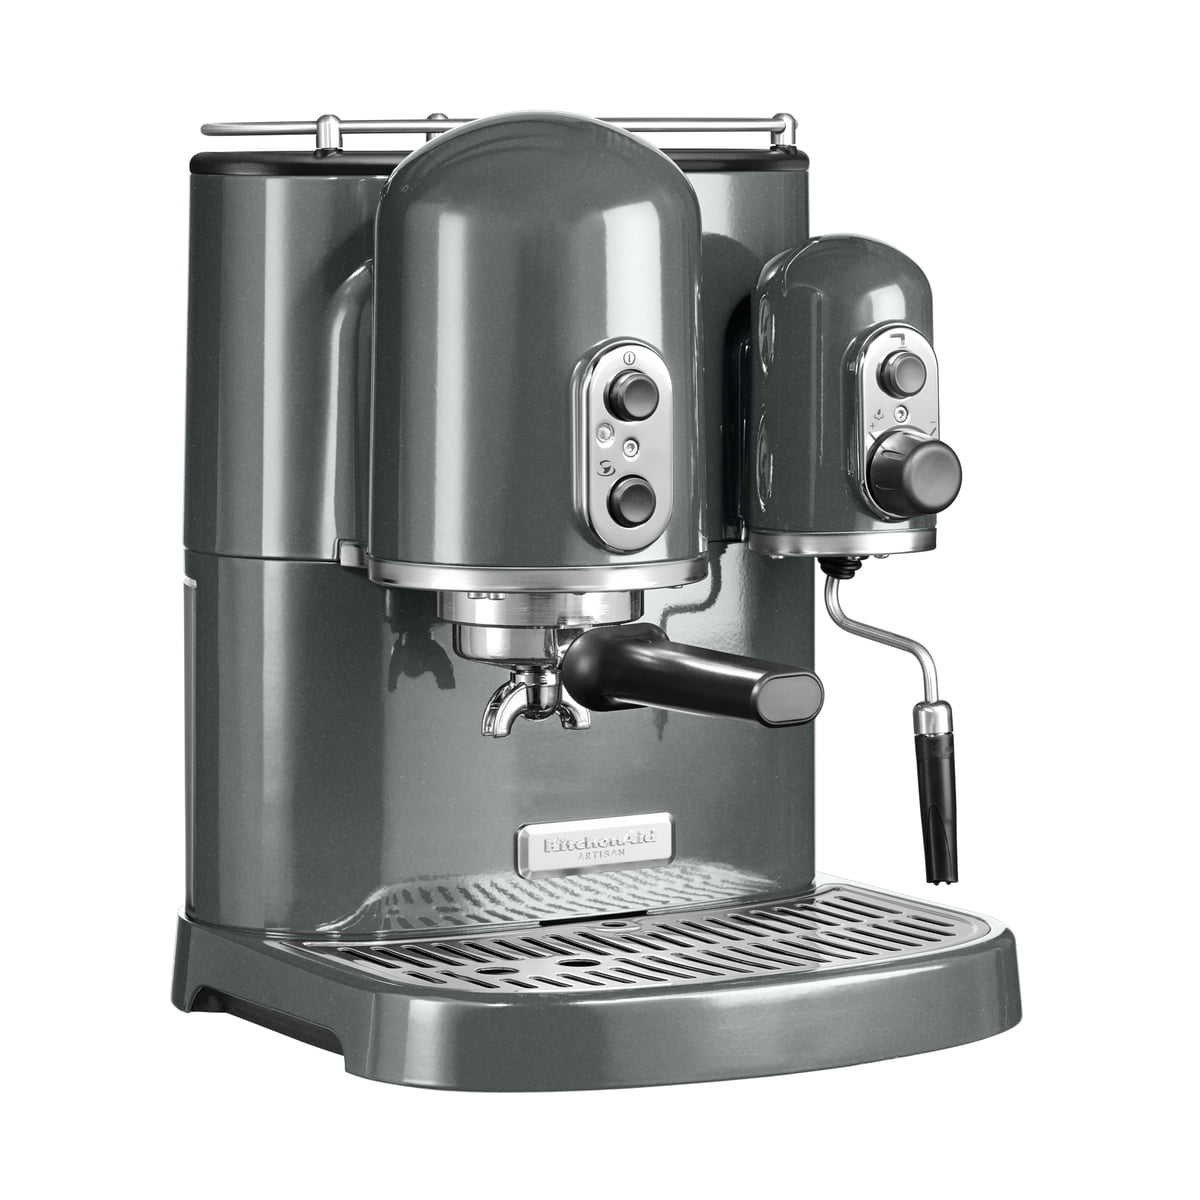 Plain Kitchenaid Artisan Espresso Machine Anthracite V For Design Decorating